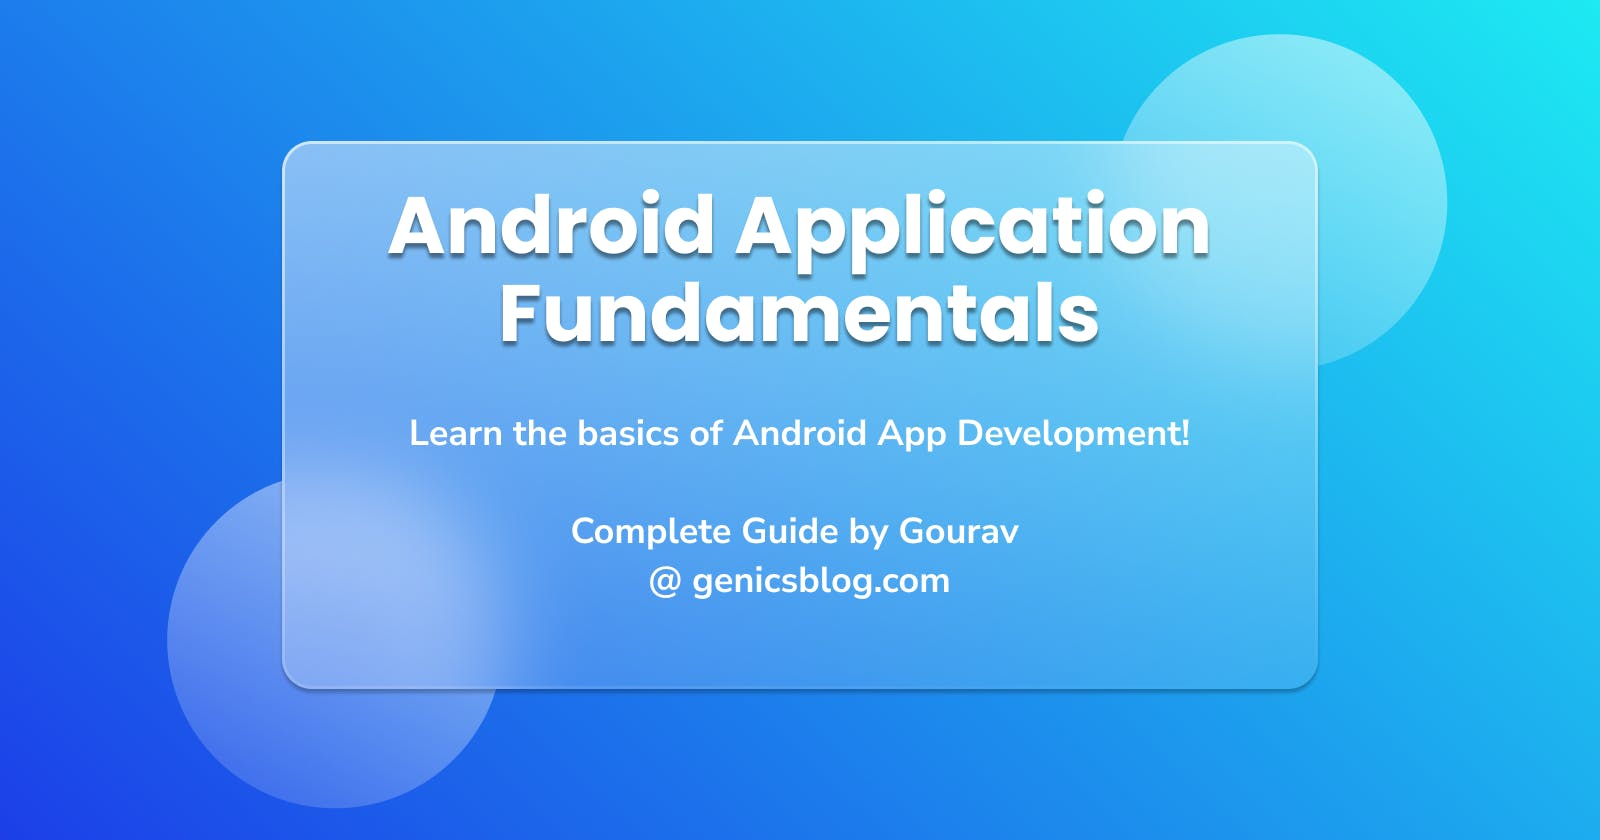 Android Application Fundamentals - Understand the bits and bytes